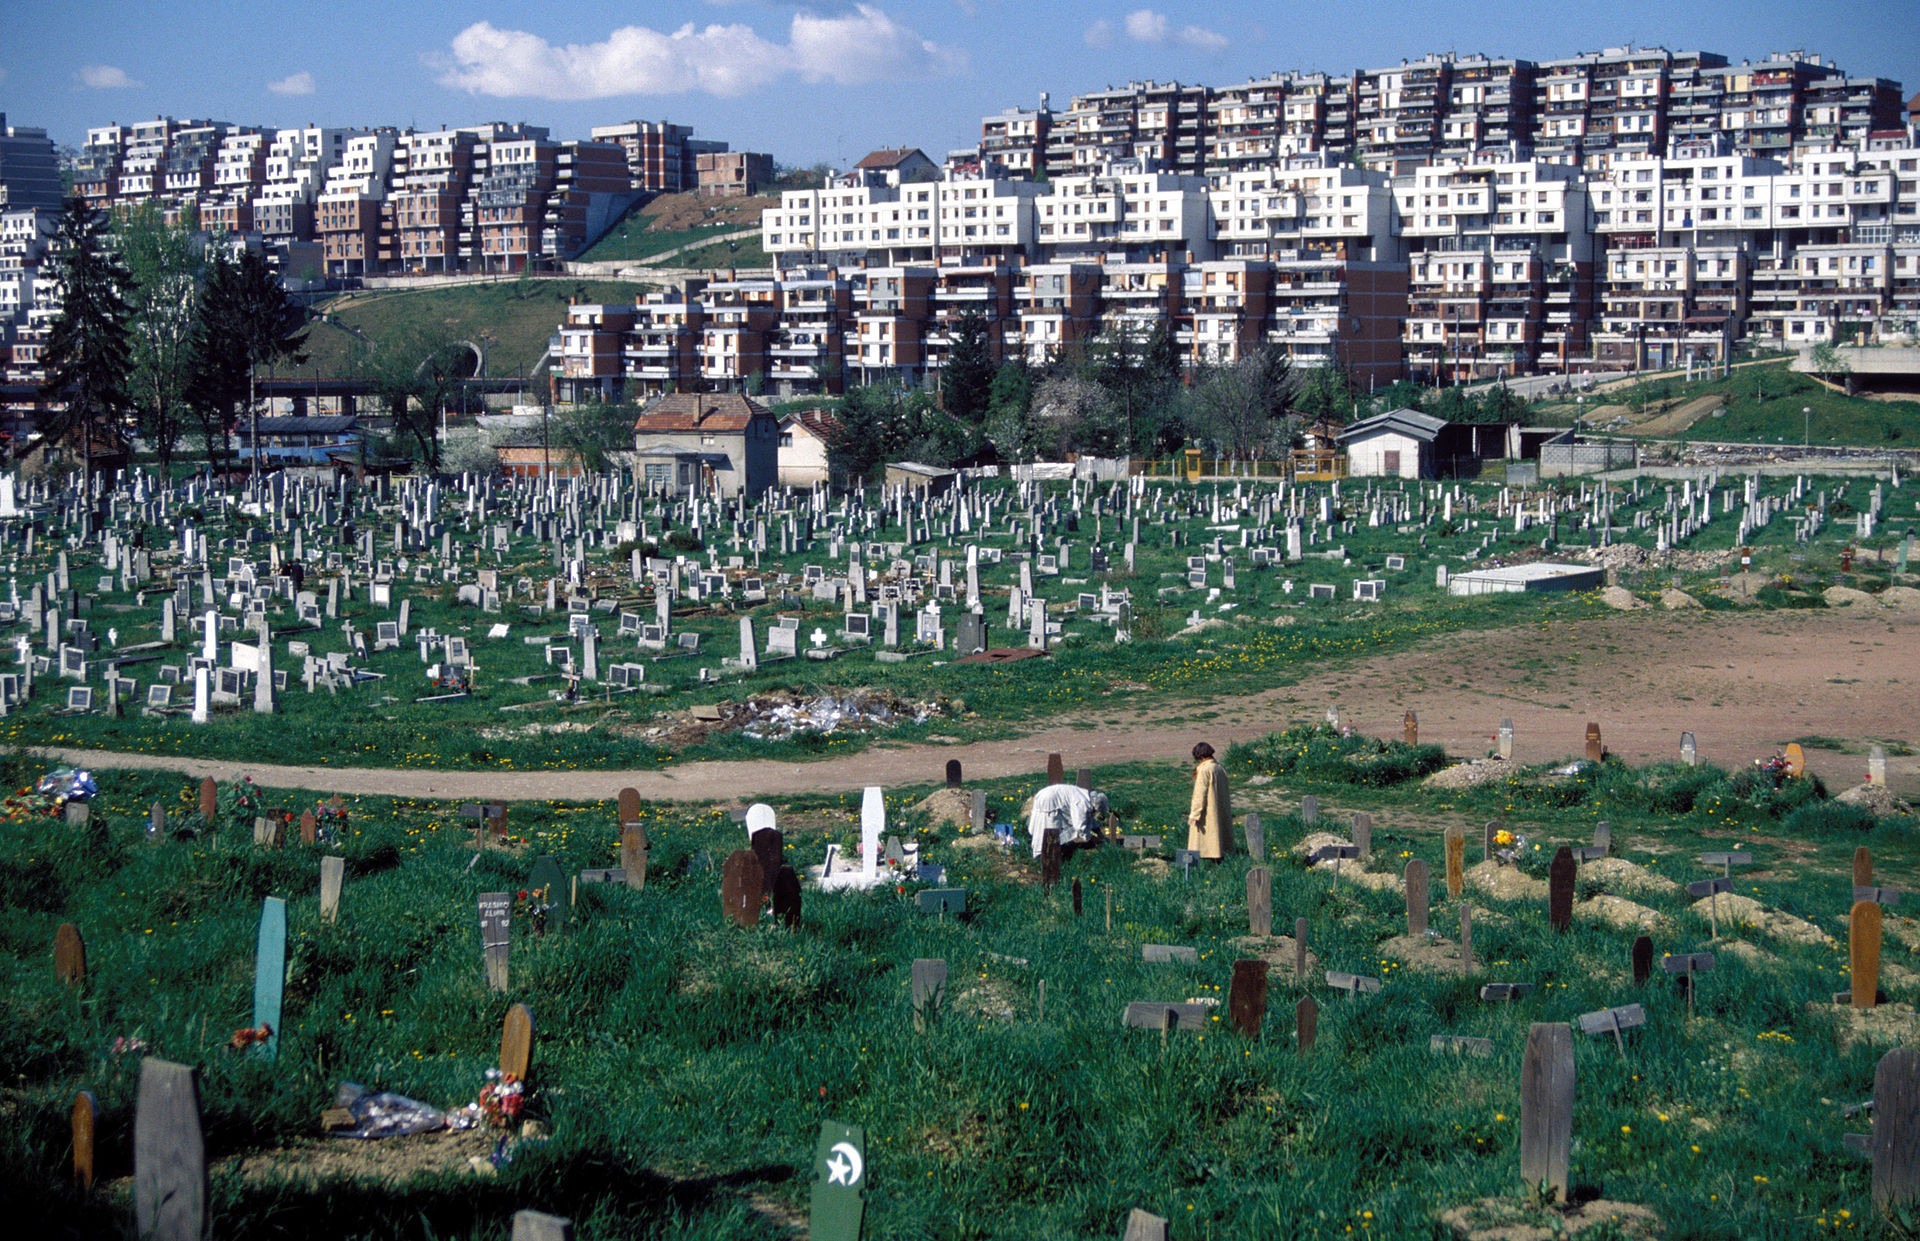 A cemetery for 12,000 killed during the Bosnian War was visible from the Koševo City Stadium ©Wikipedia